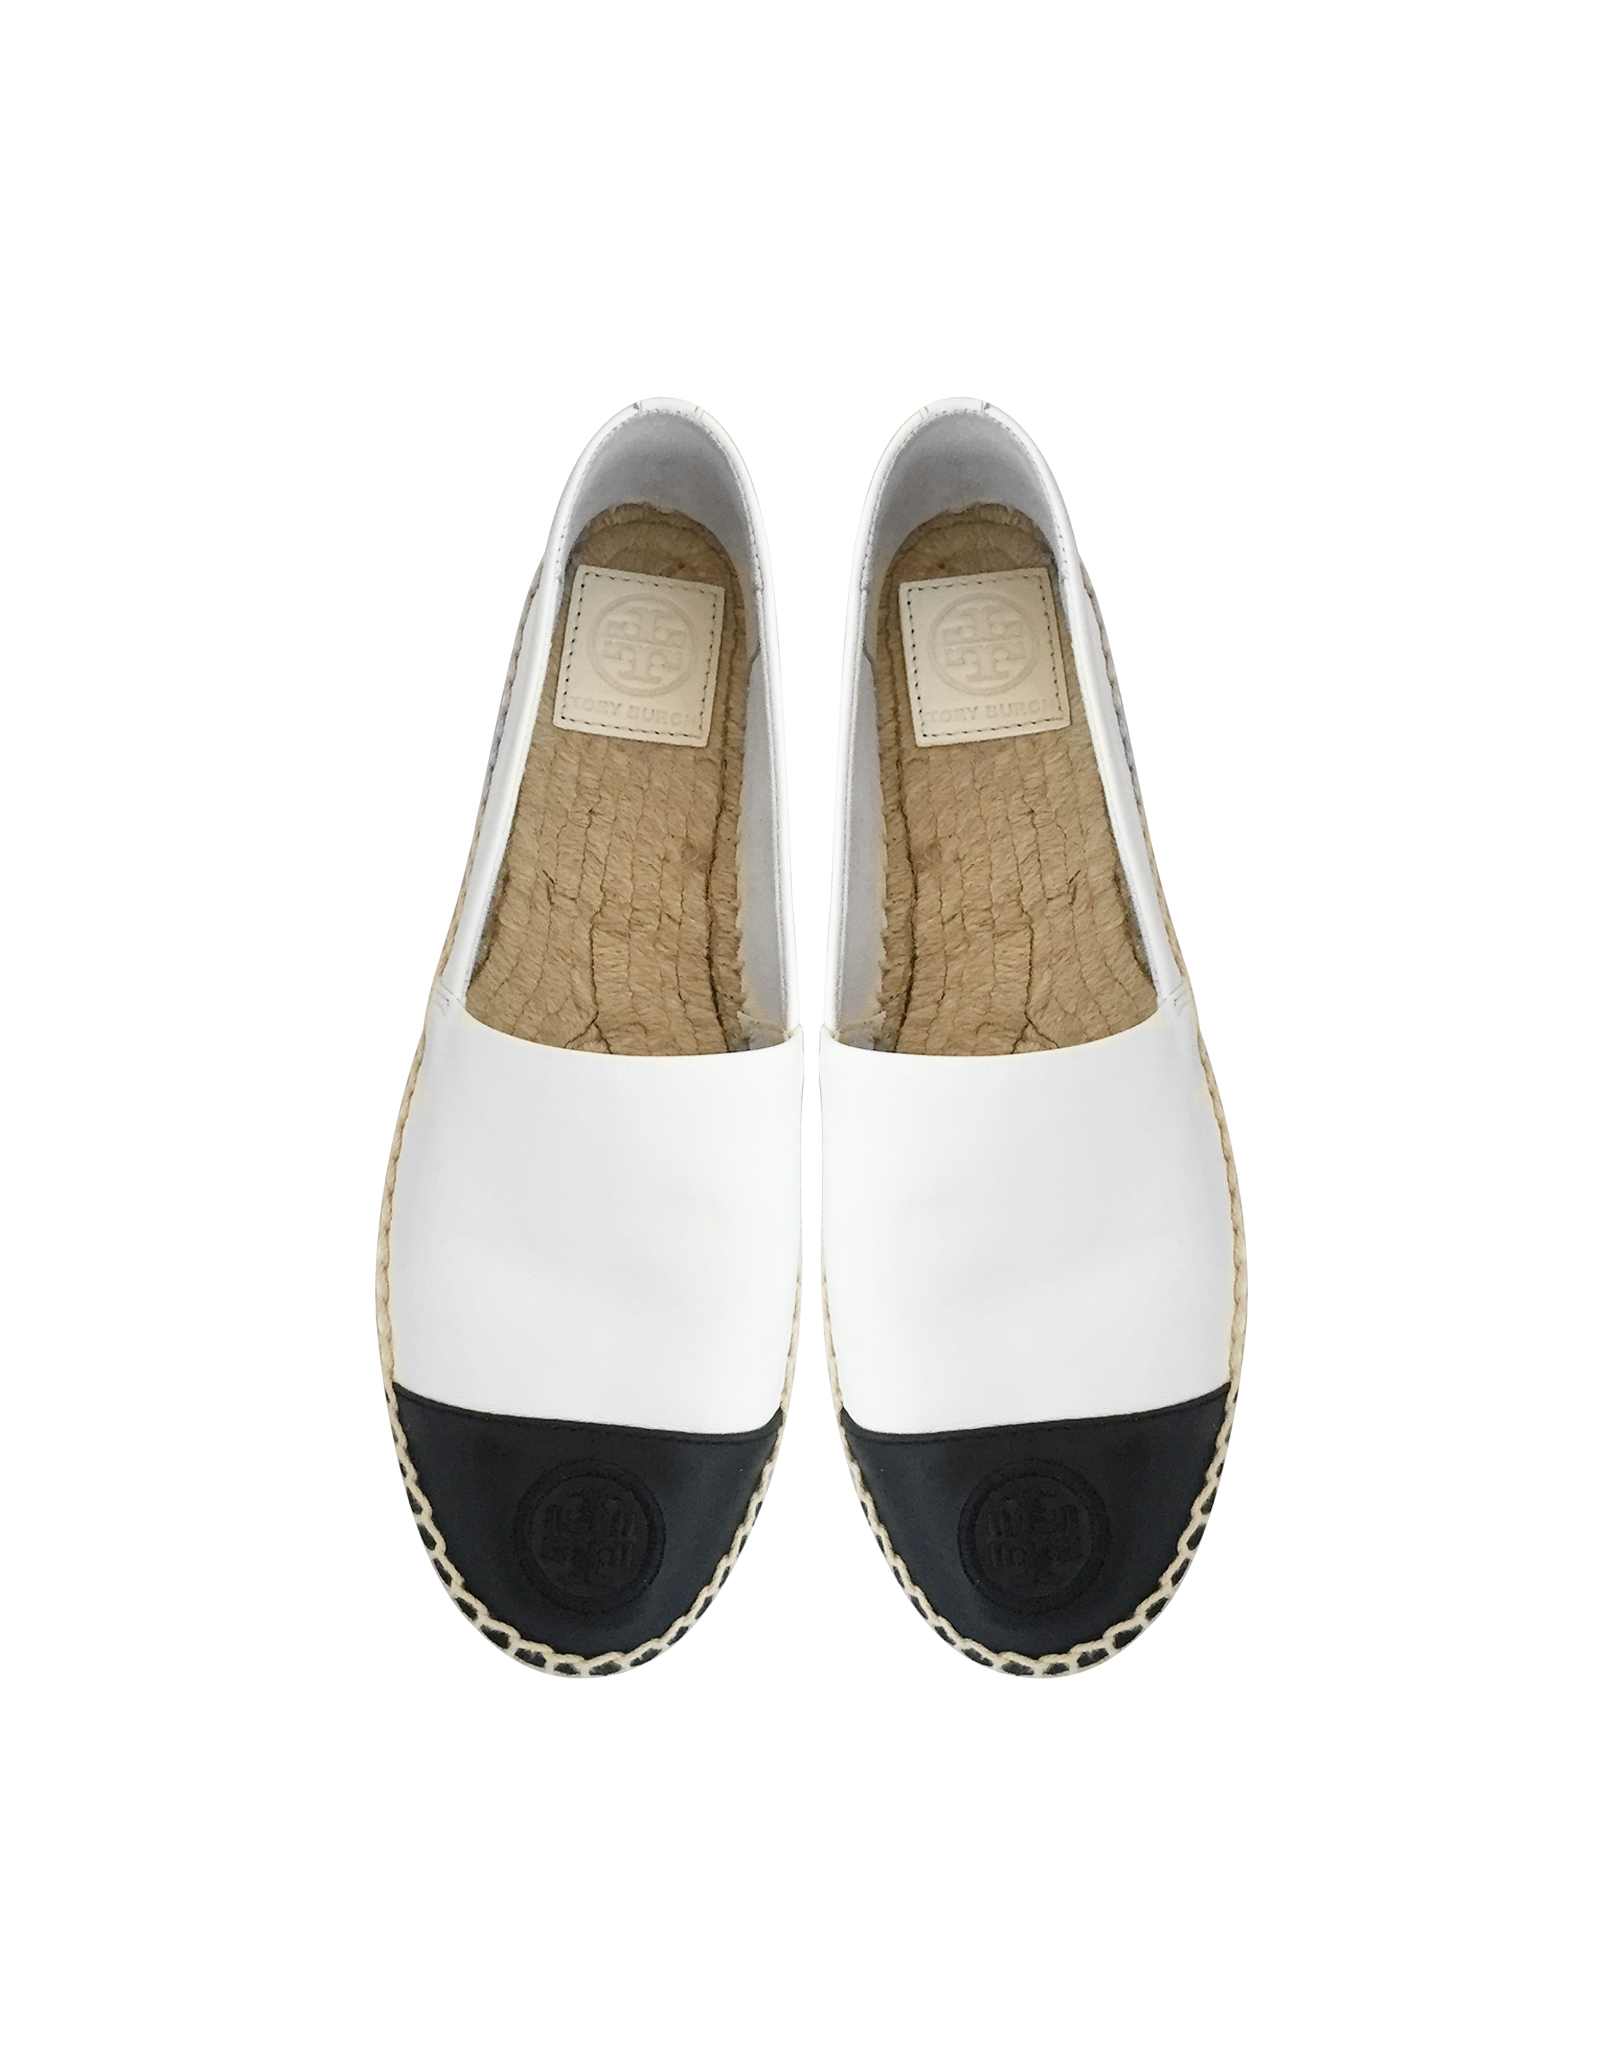 1706c567783 Lyst - Tory Burch Color Block Leather Flat Espadrille in White